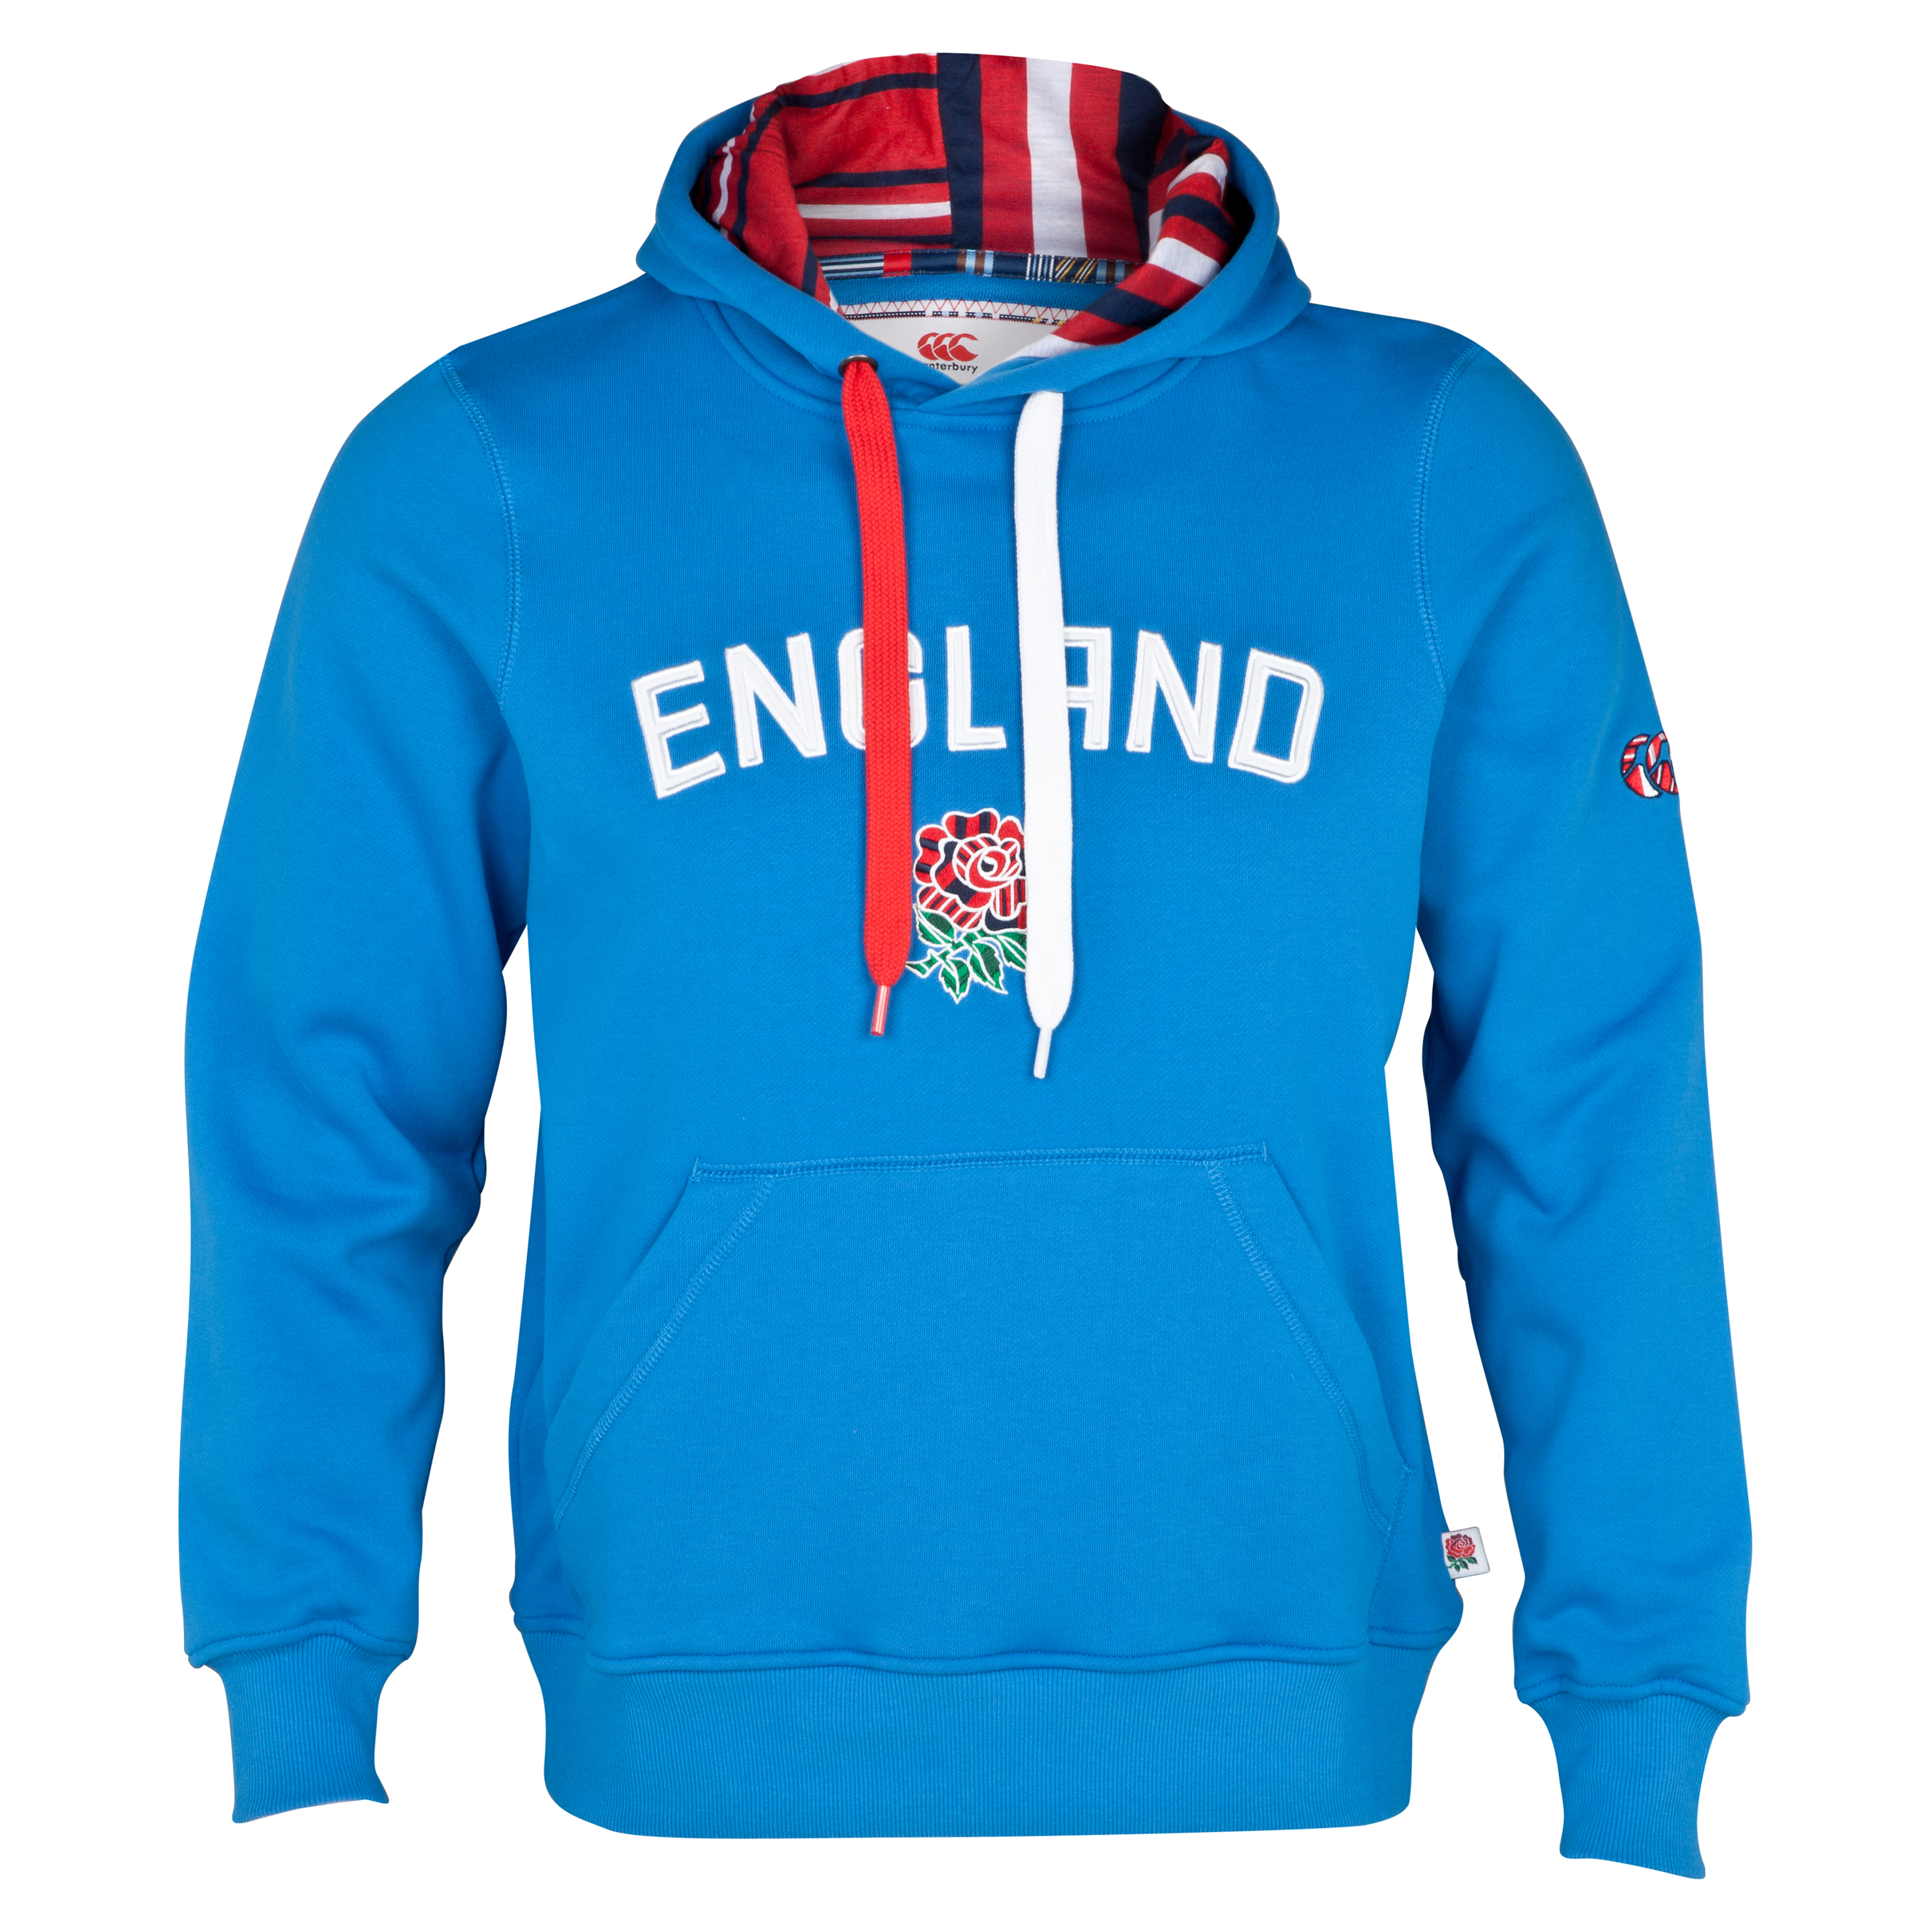 England Uglies Graphic Overhead Hoody - British Blue